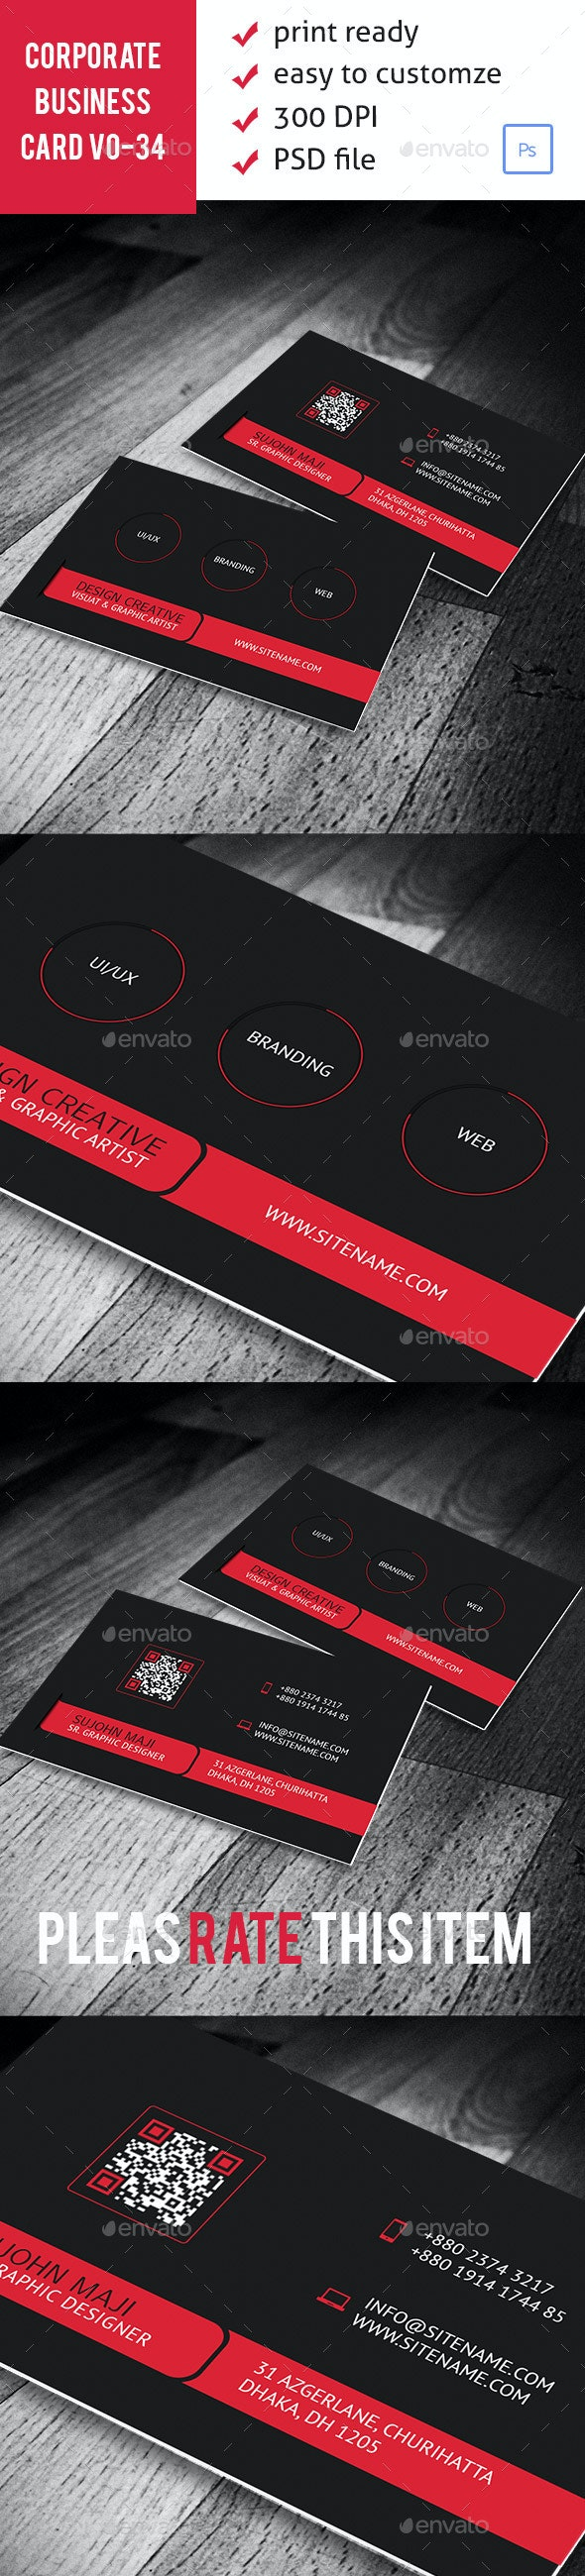 Corporate Business Card VO-34 - Corporate Business Cards